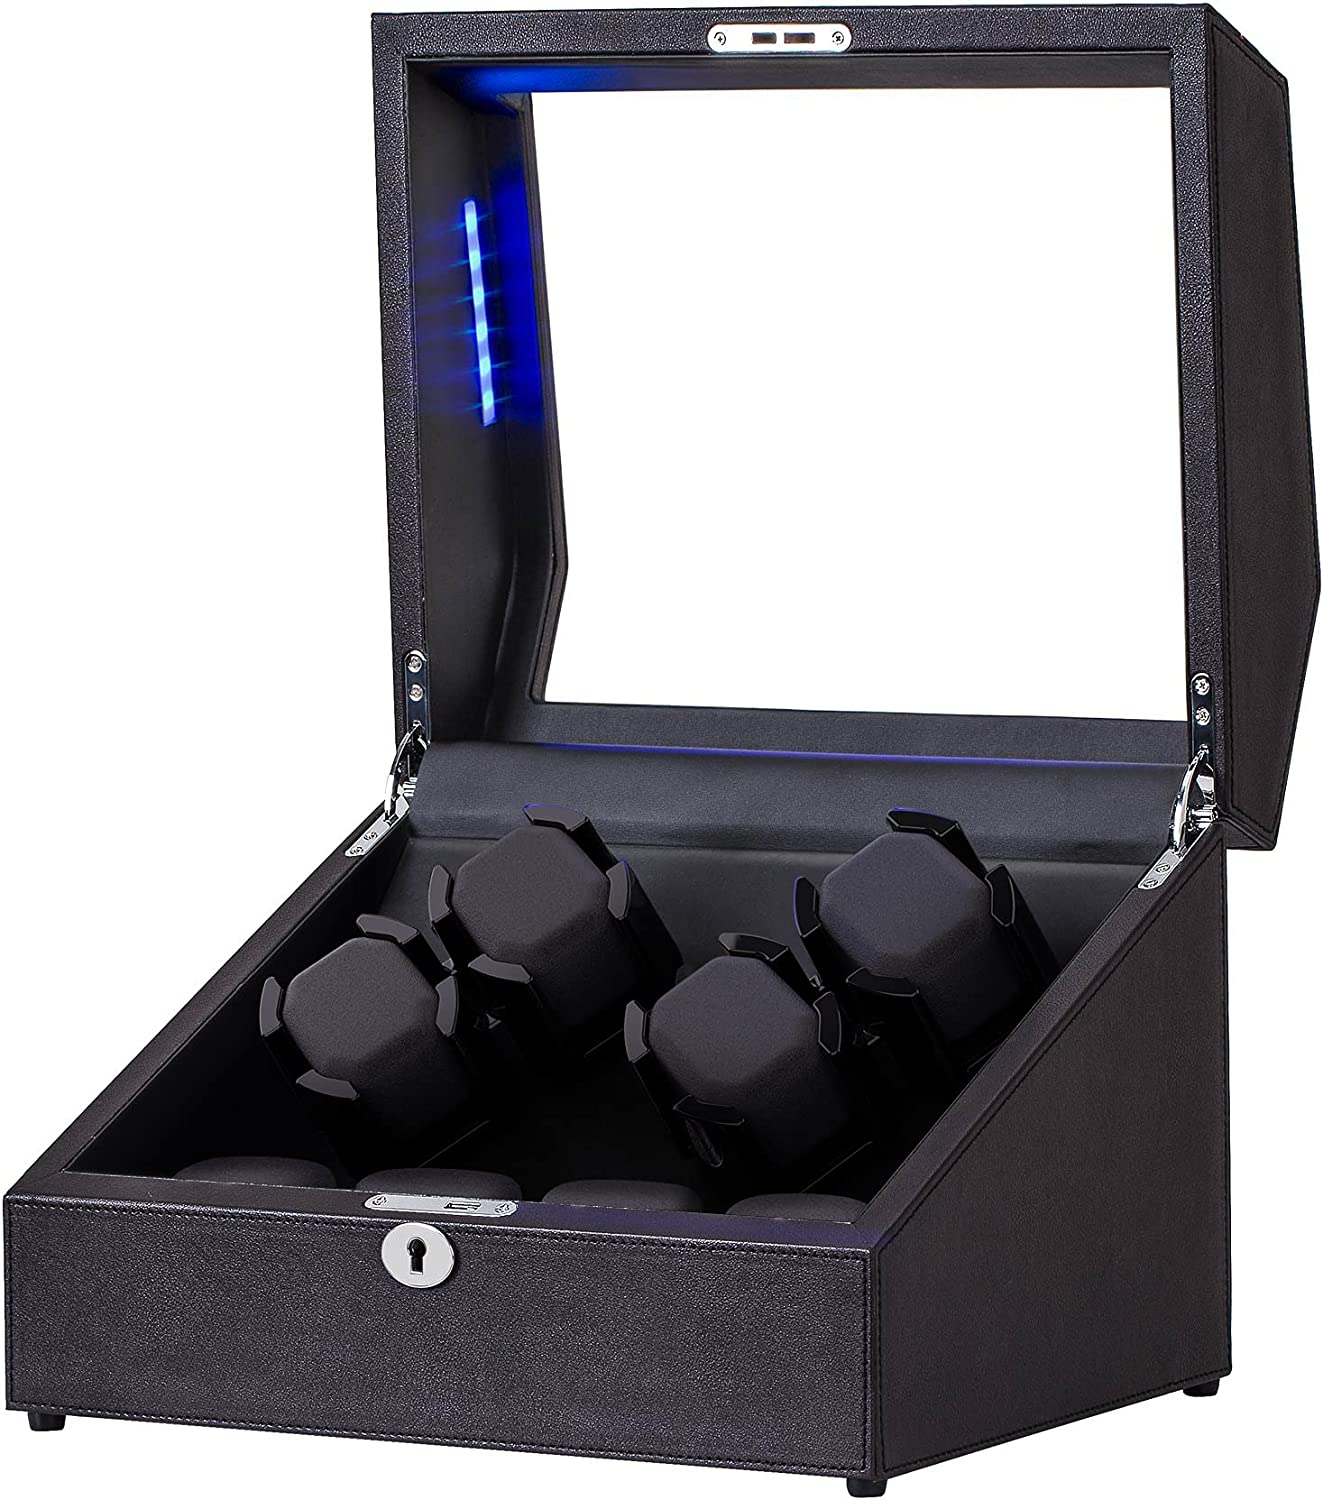 Watch Winder for 4 Watches +4 Extra Storages with Blue Interior Backlight, Lockable Watch Winding Box in Coffee Leather Shell, Silent Mabuchi Motors and 4 Rotation Mode Setting : Clothing, Shoes & Jewelry